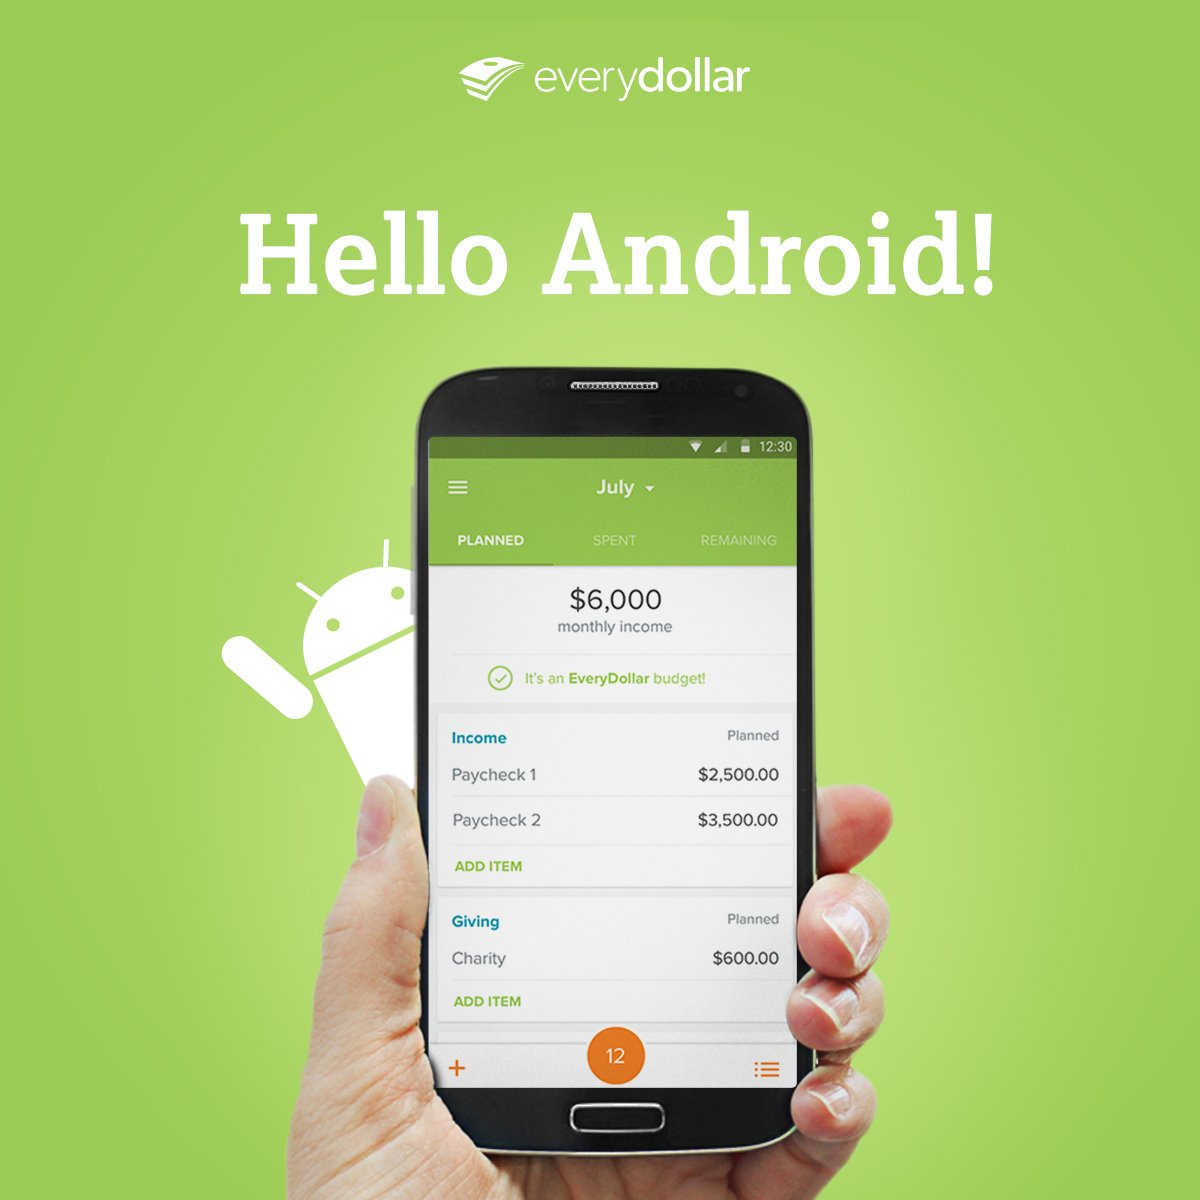 Everydollar On Twitter The Is Now Available For Android Budgeters Check It Out Https T Co 8zphstqyrr